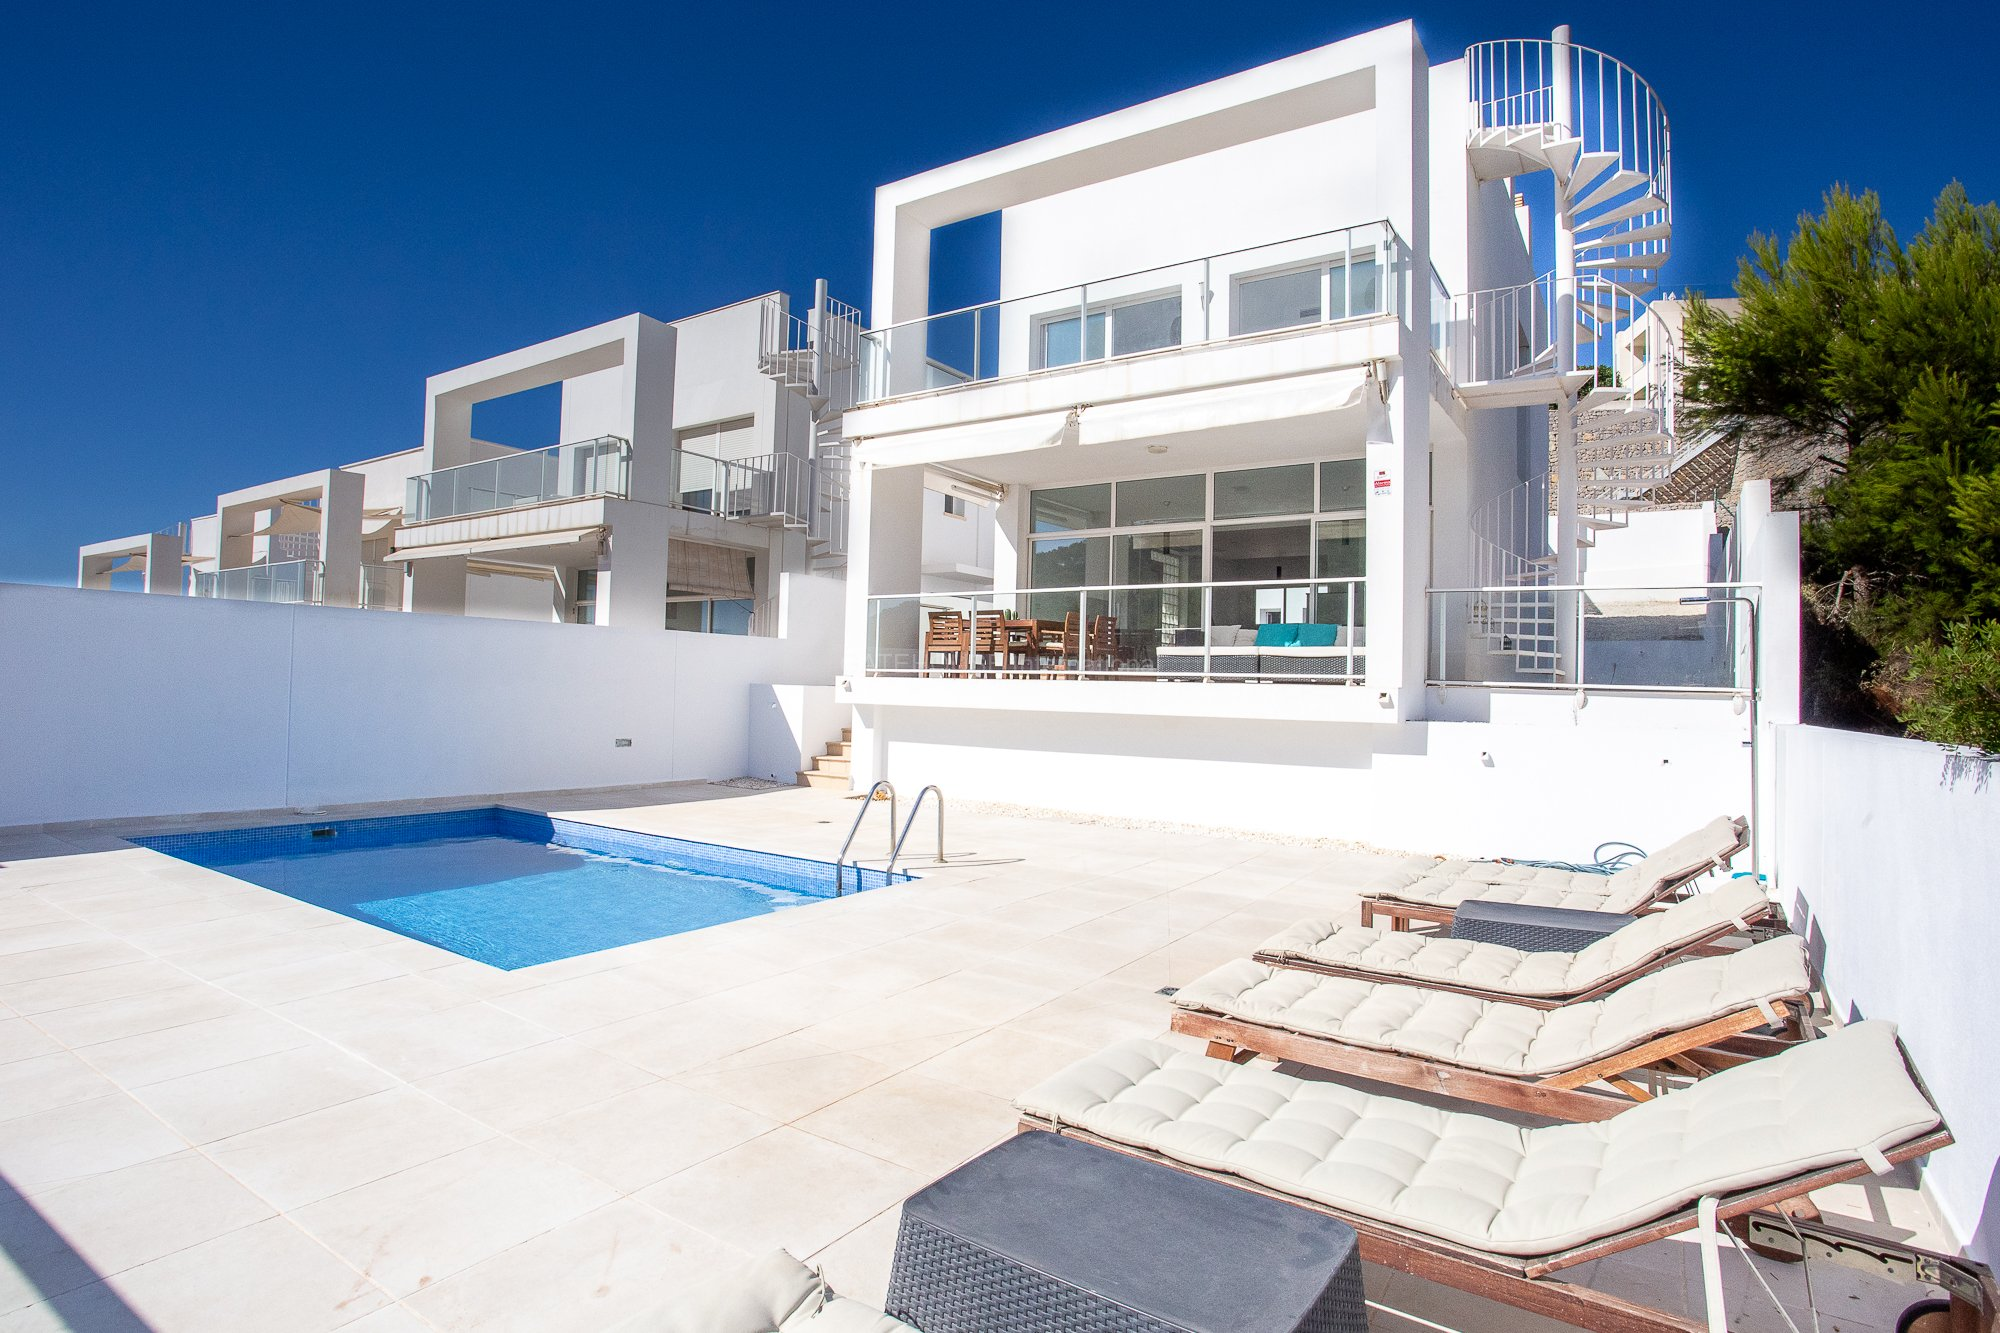 Villa for sale close to the beach in Cala Vadella